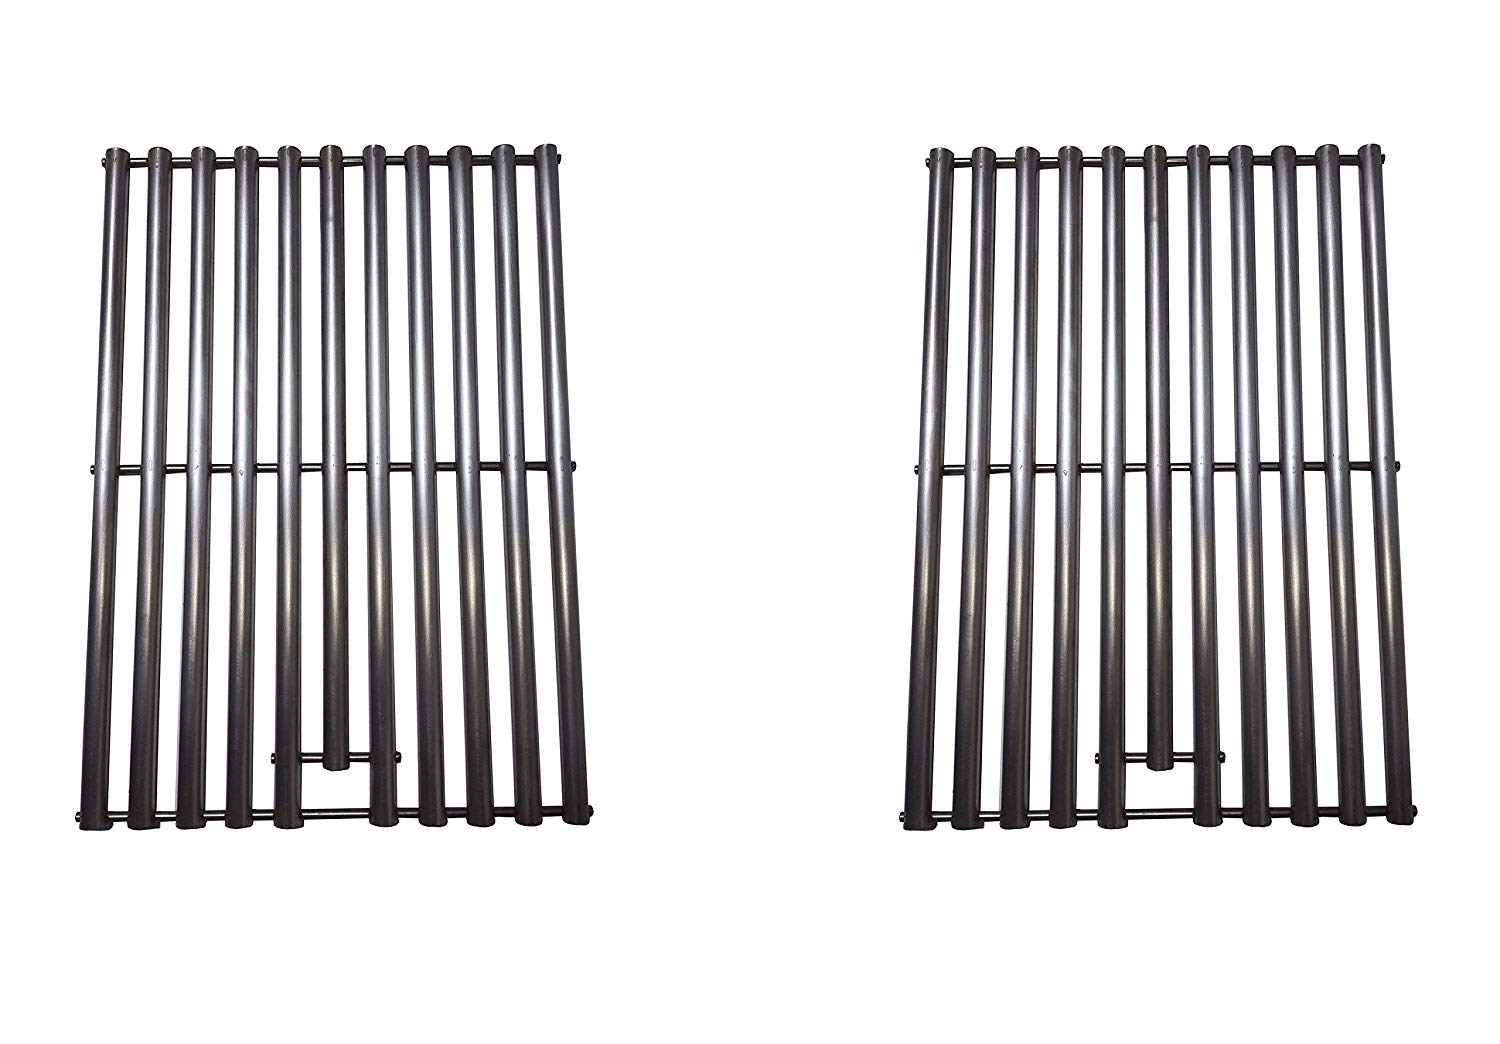 Zljoint Stainless Steel Cooking Grid Replacement for Select Gas Grill Models by Kenmore, Nexgrill and Others, Set of 2